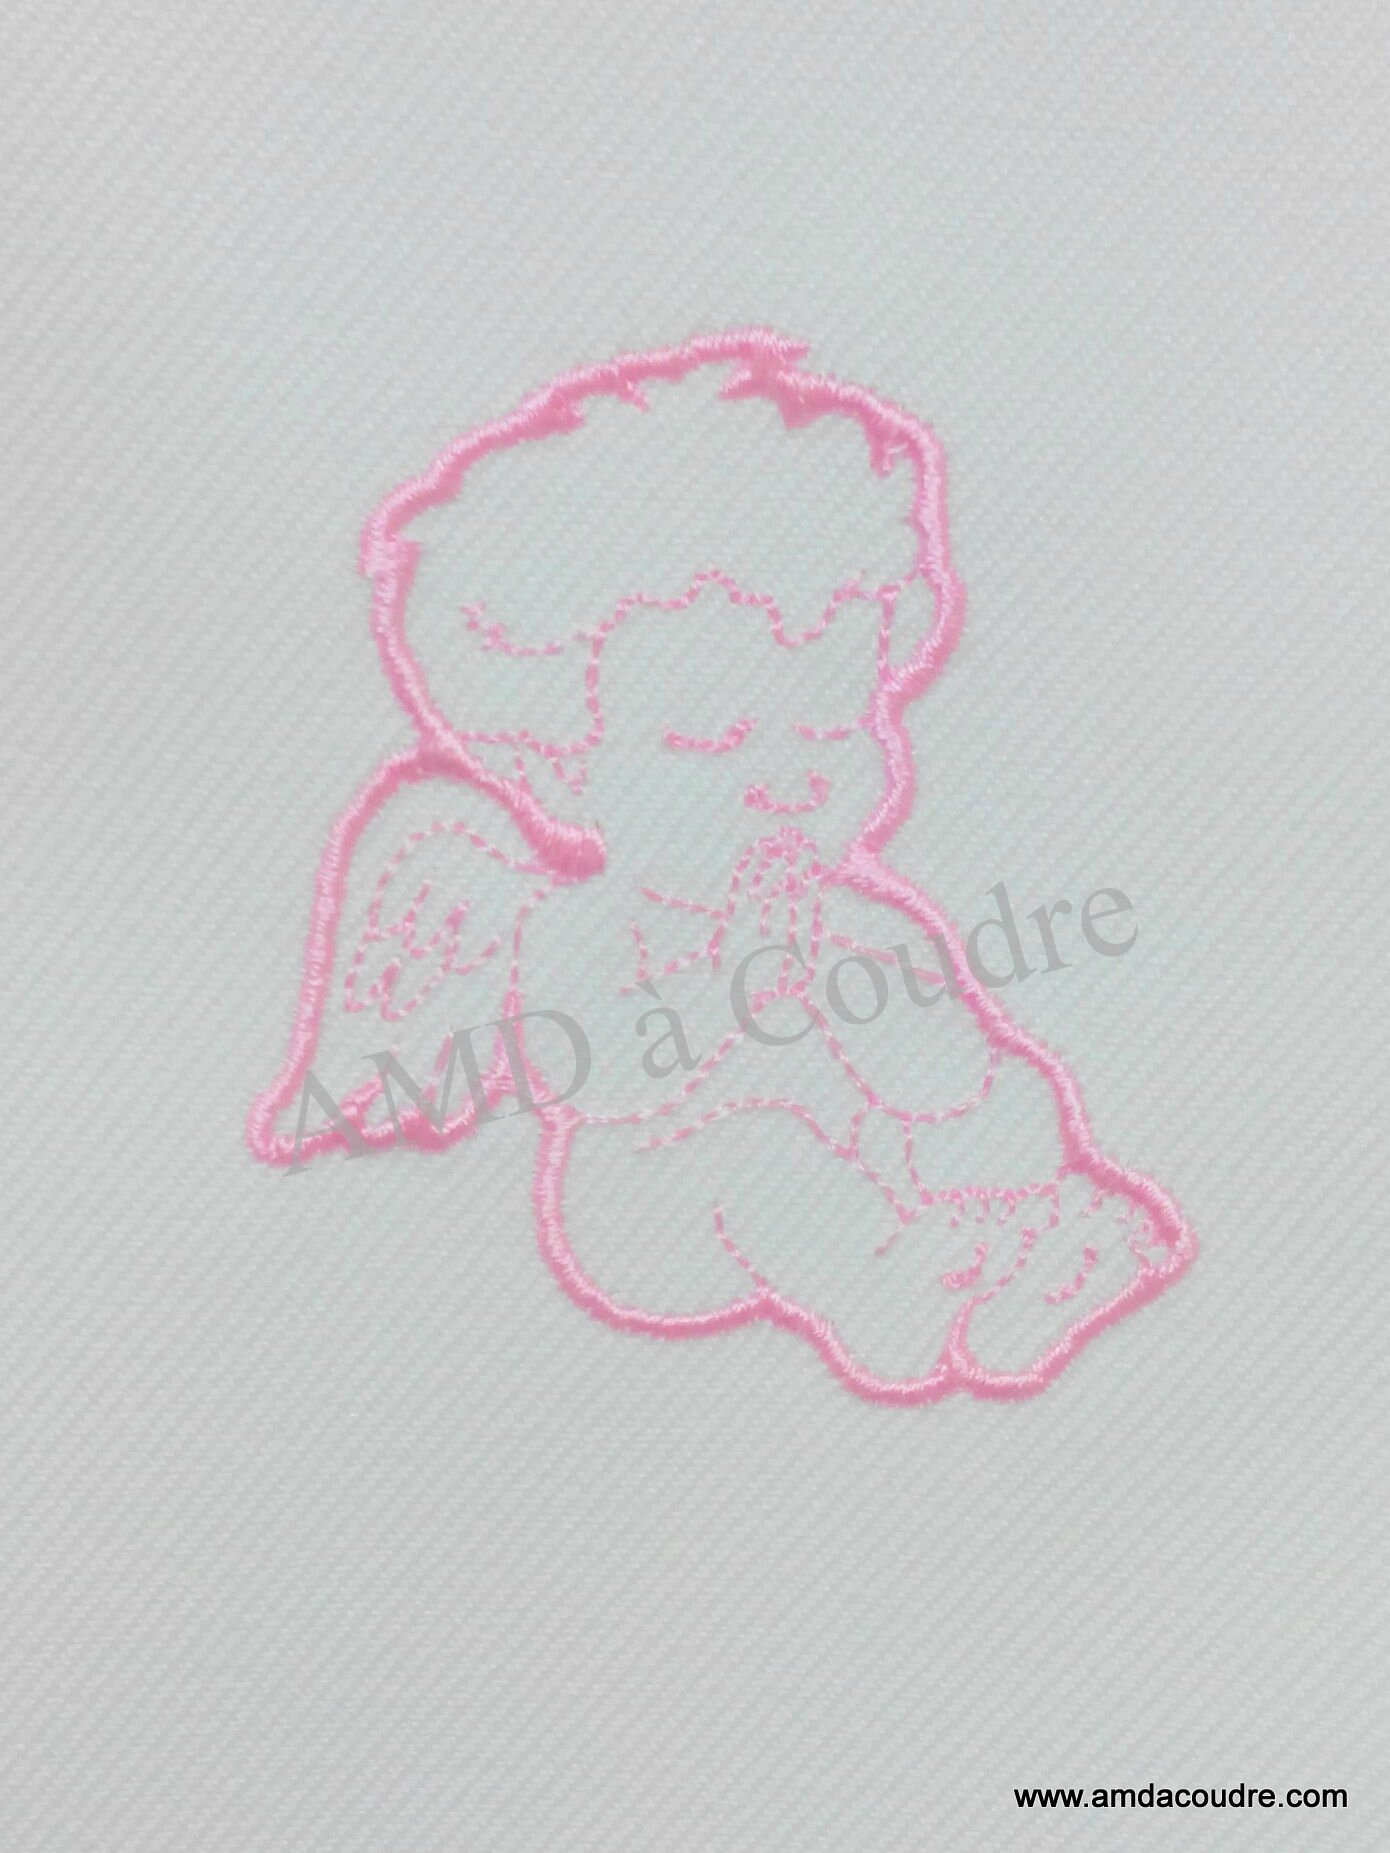 creation etole personnalisée broderie alice angelot amd a coudre (5)